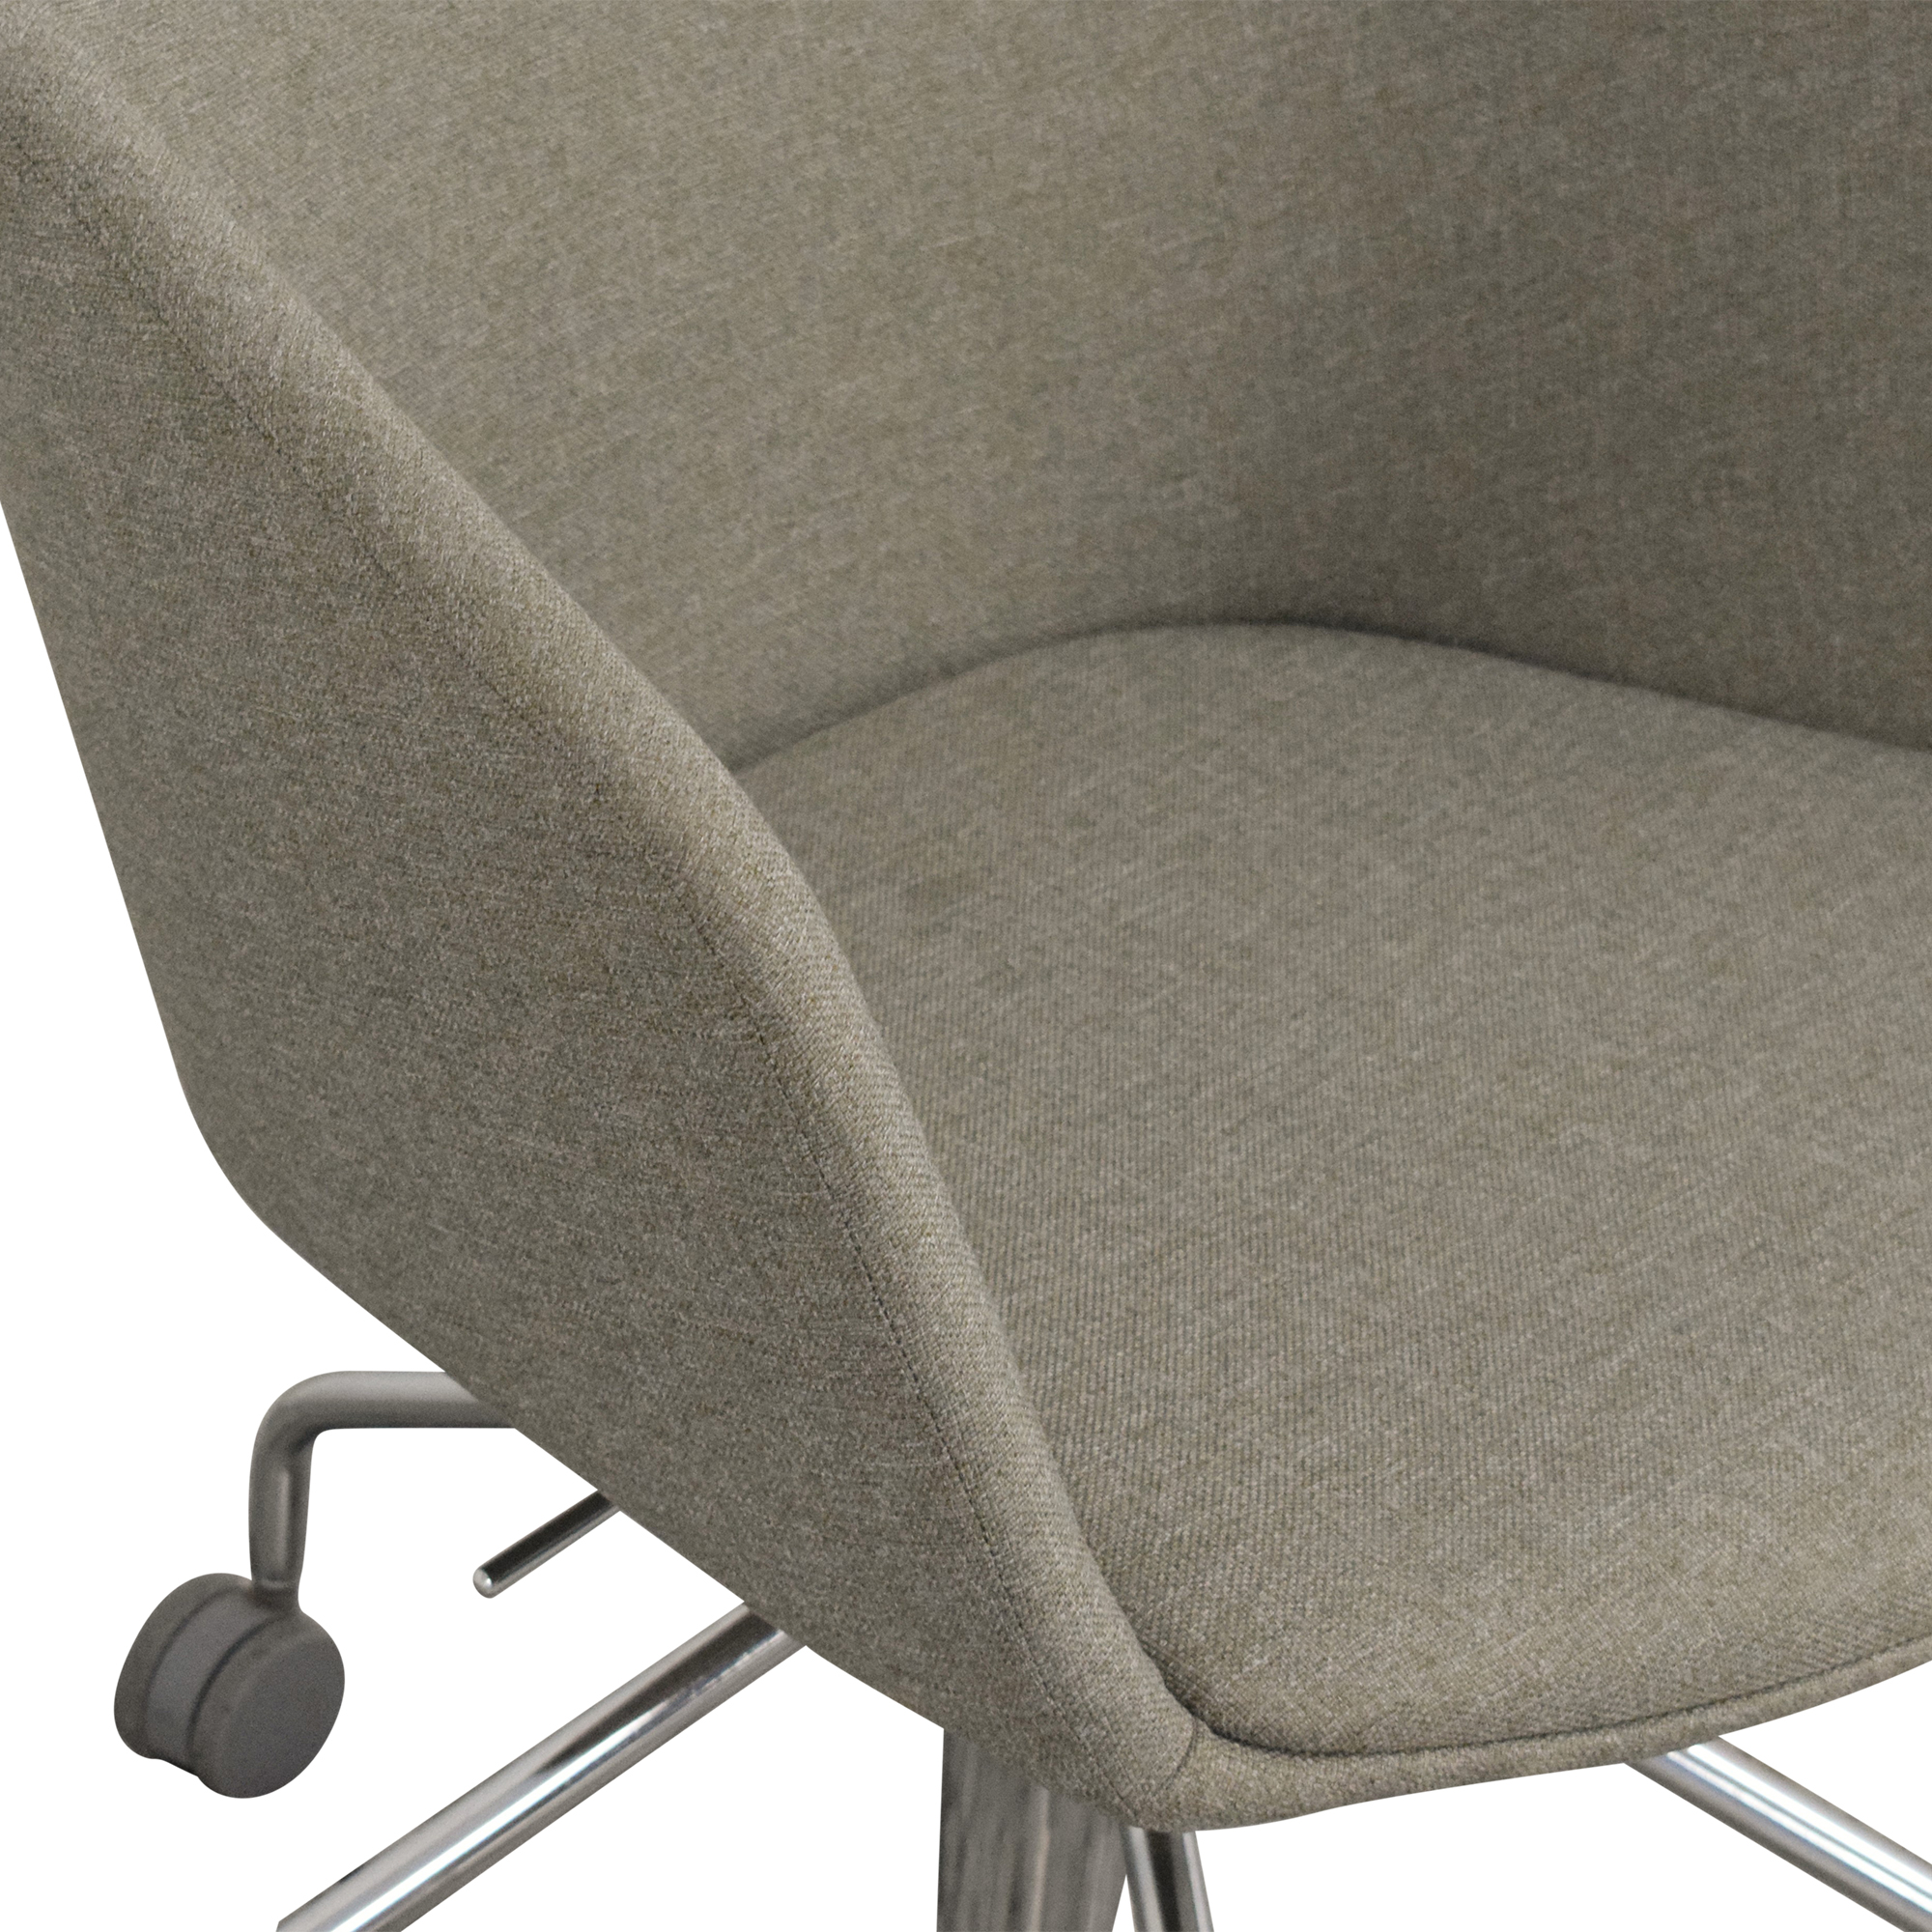 Poppin Poppin Pitch Meeting Chair for sale